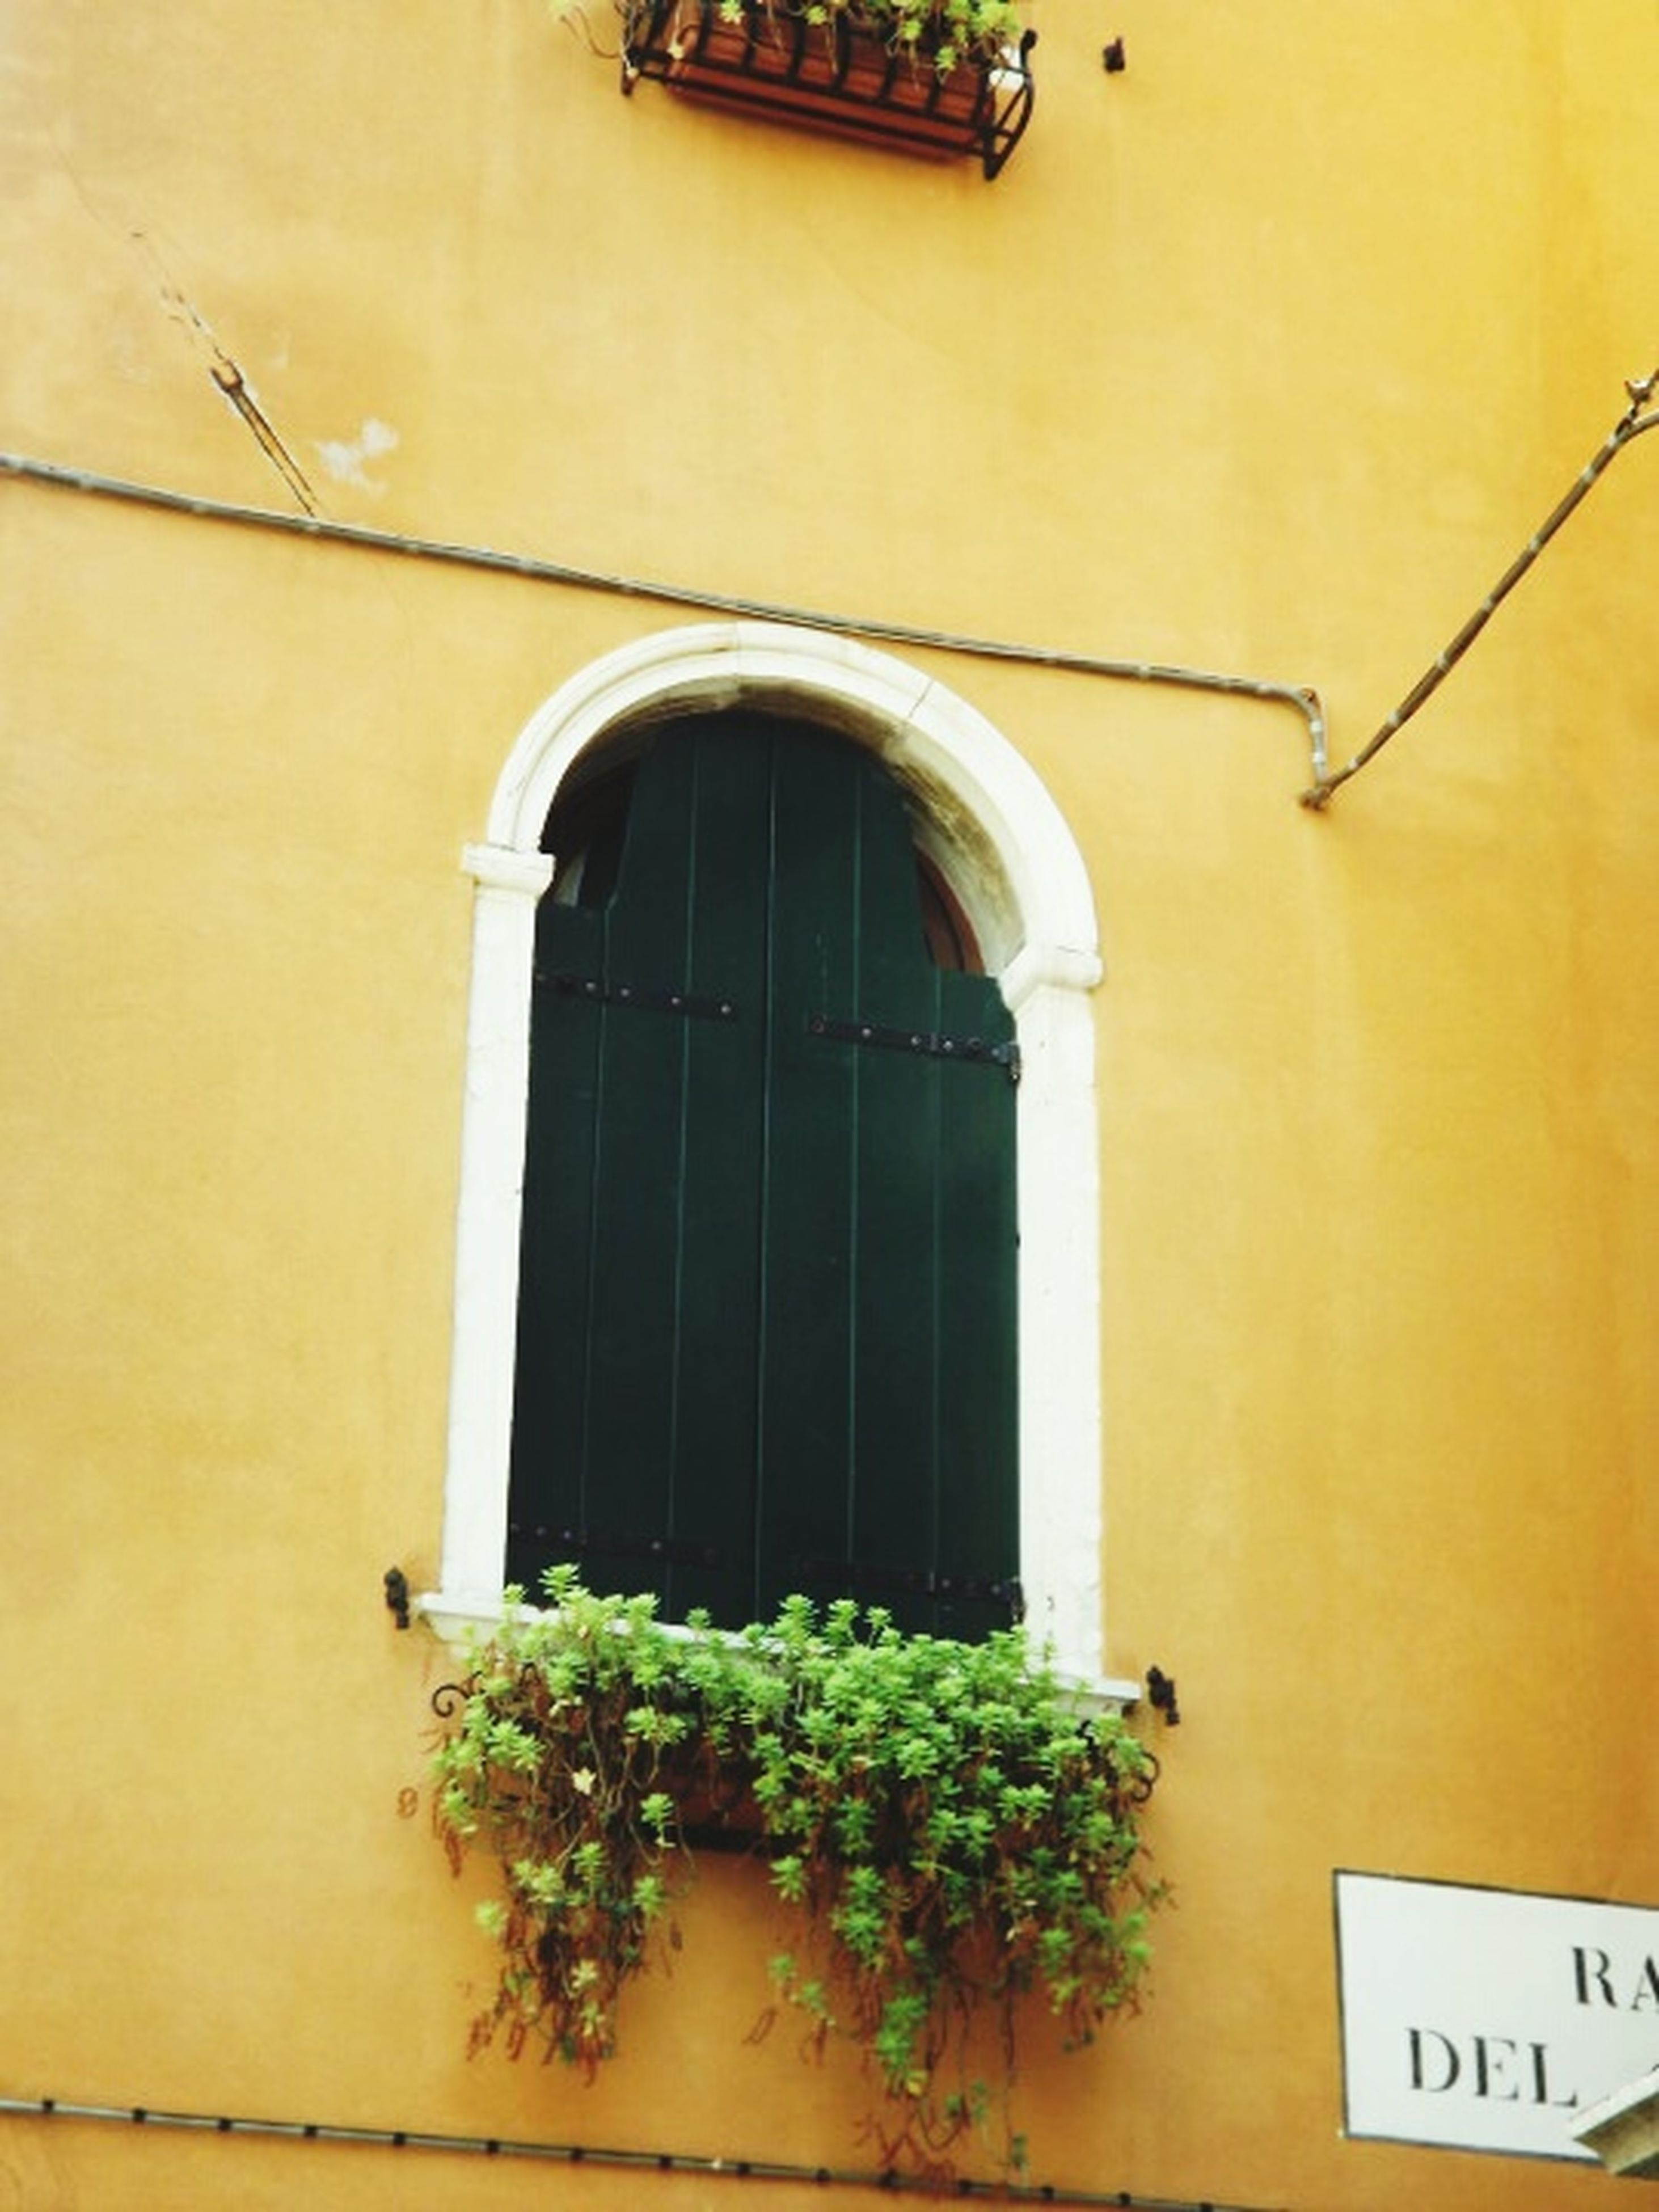 architecture, building exterior, built structure, yellow, window, house, door, closed, arch, residential structure, plant, building, residential building, outdoors, wall - building feature, entrance, green color, low angle view, no people, day